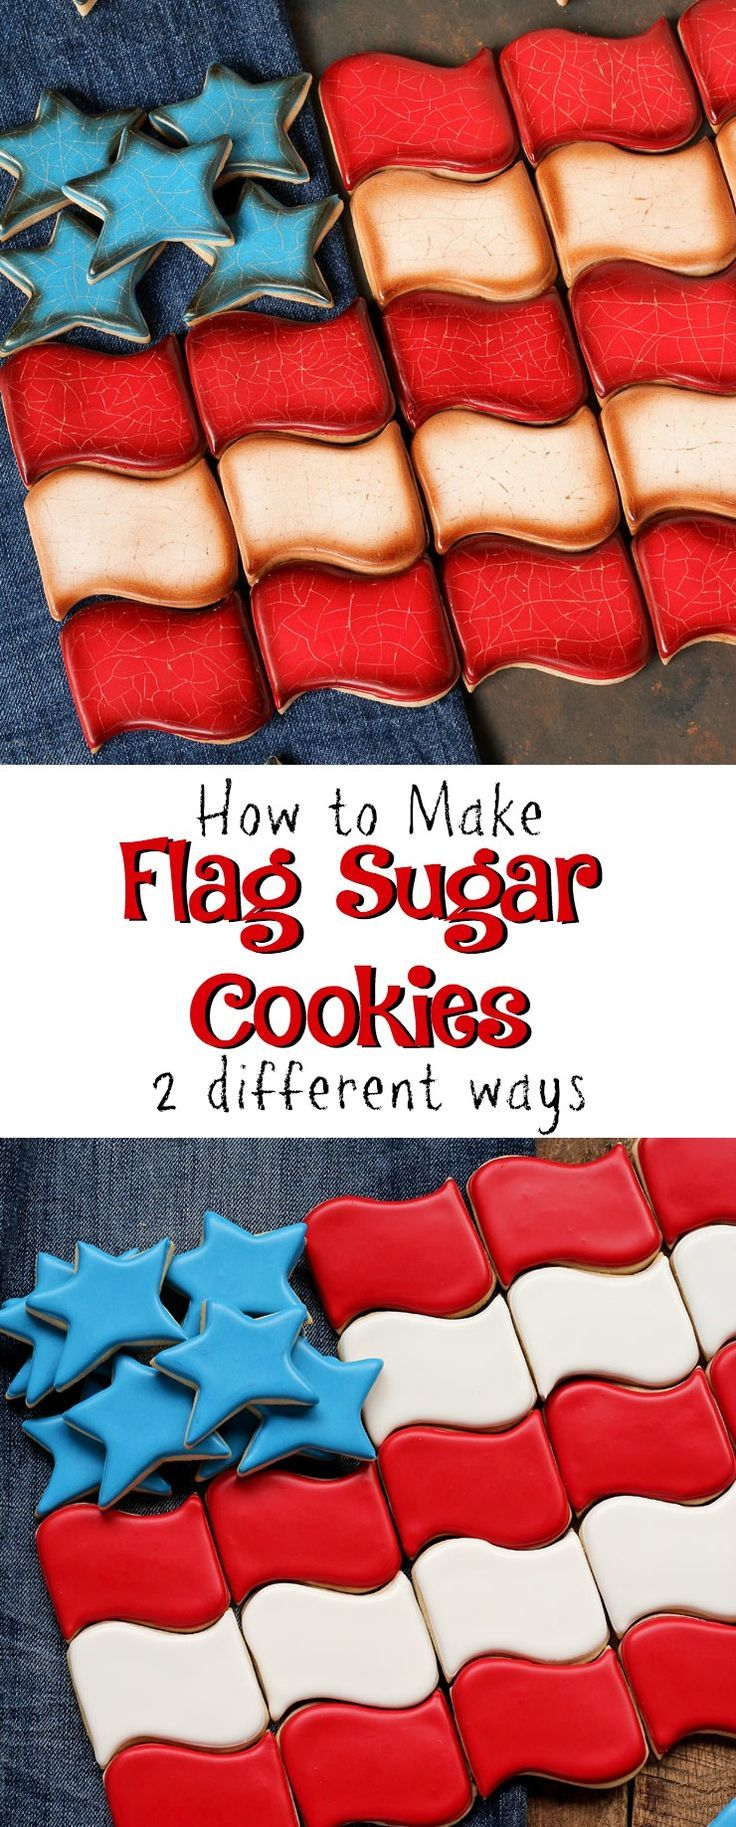 How to Distress Sugar Cookies for an Aged Look or Keep it Simple via www.thebearfootbaker.com Decorated Sugar Cookies | Sugar Cookies | Roll Out Cookies | Royal Icing | Flag Cookies | American Flag Cookies | How to Decorate Cookies | Creative Cookie Cutters | Patriotic Cookies | Cookie Techniques | The Bearfoot B